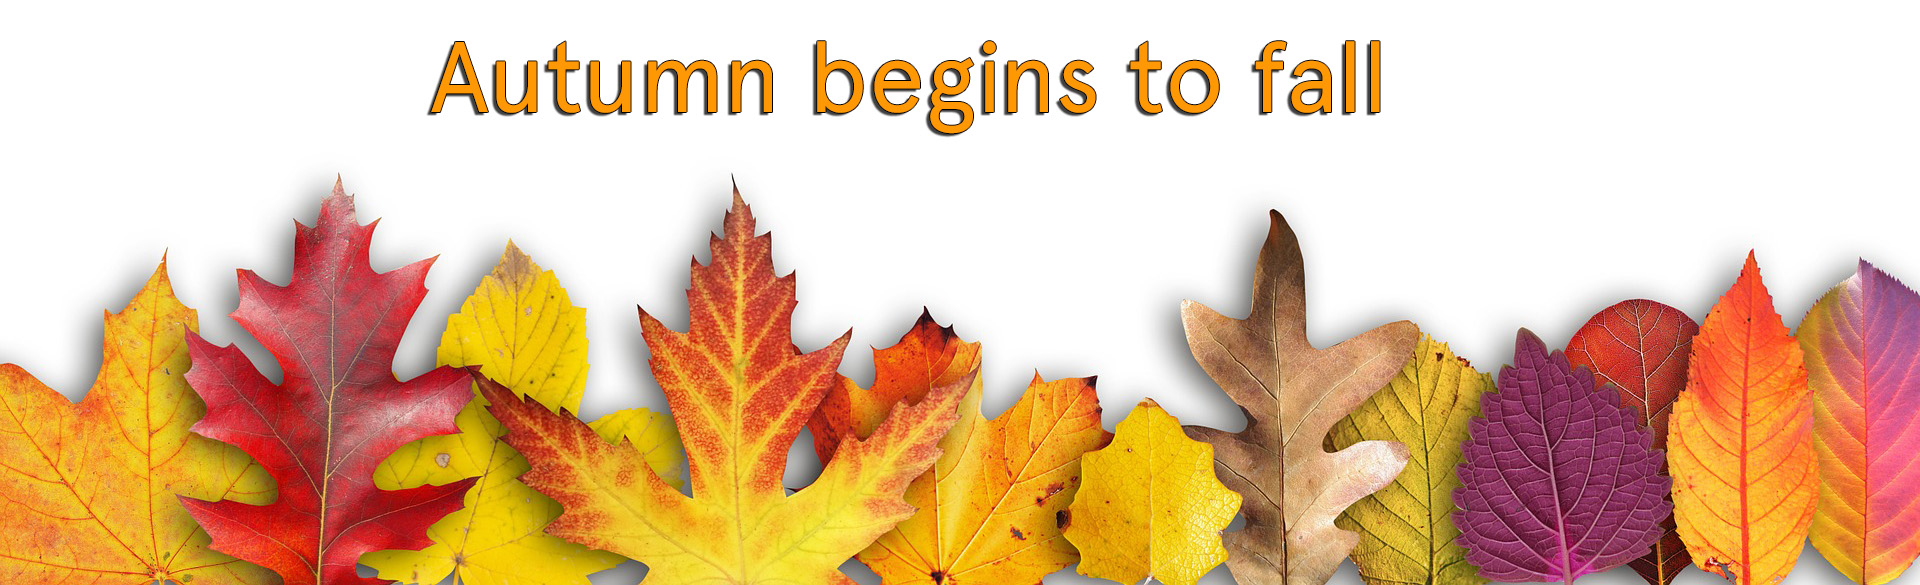 Autumn begins to fall